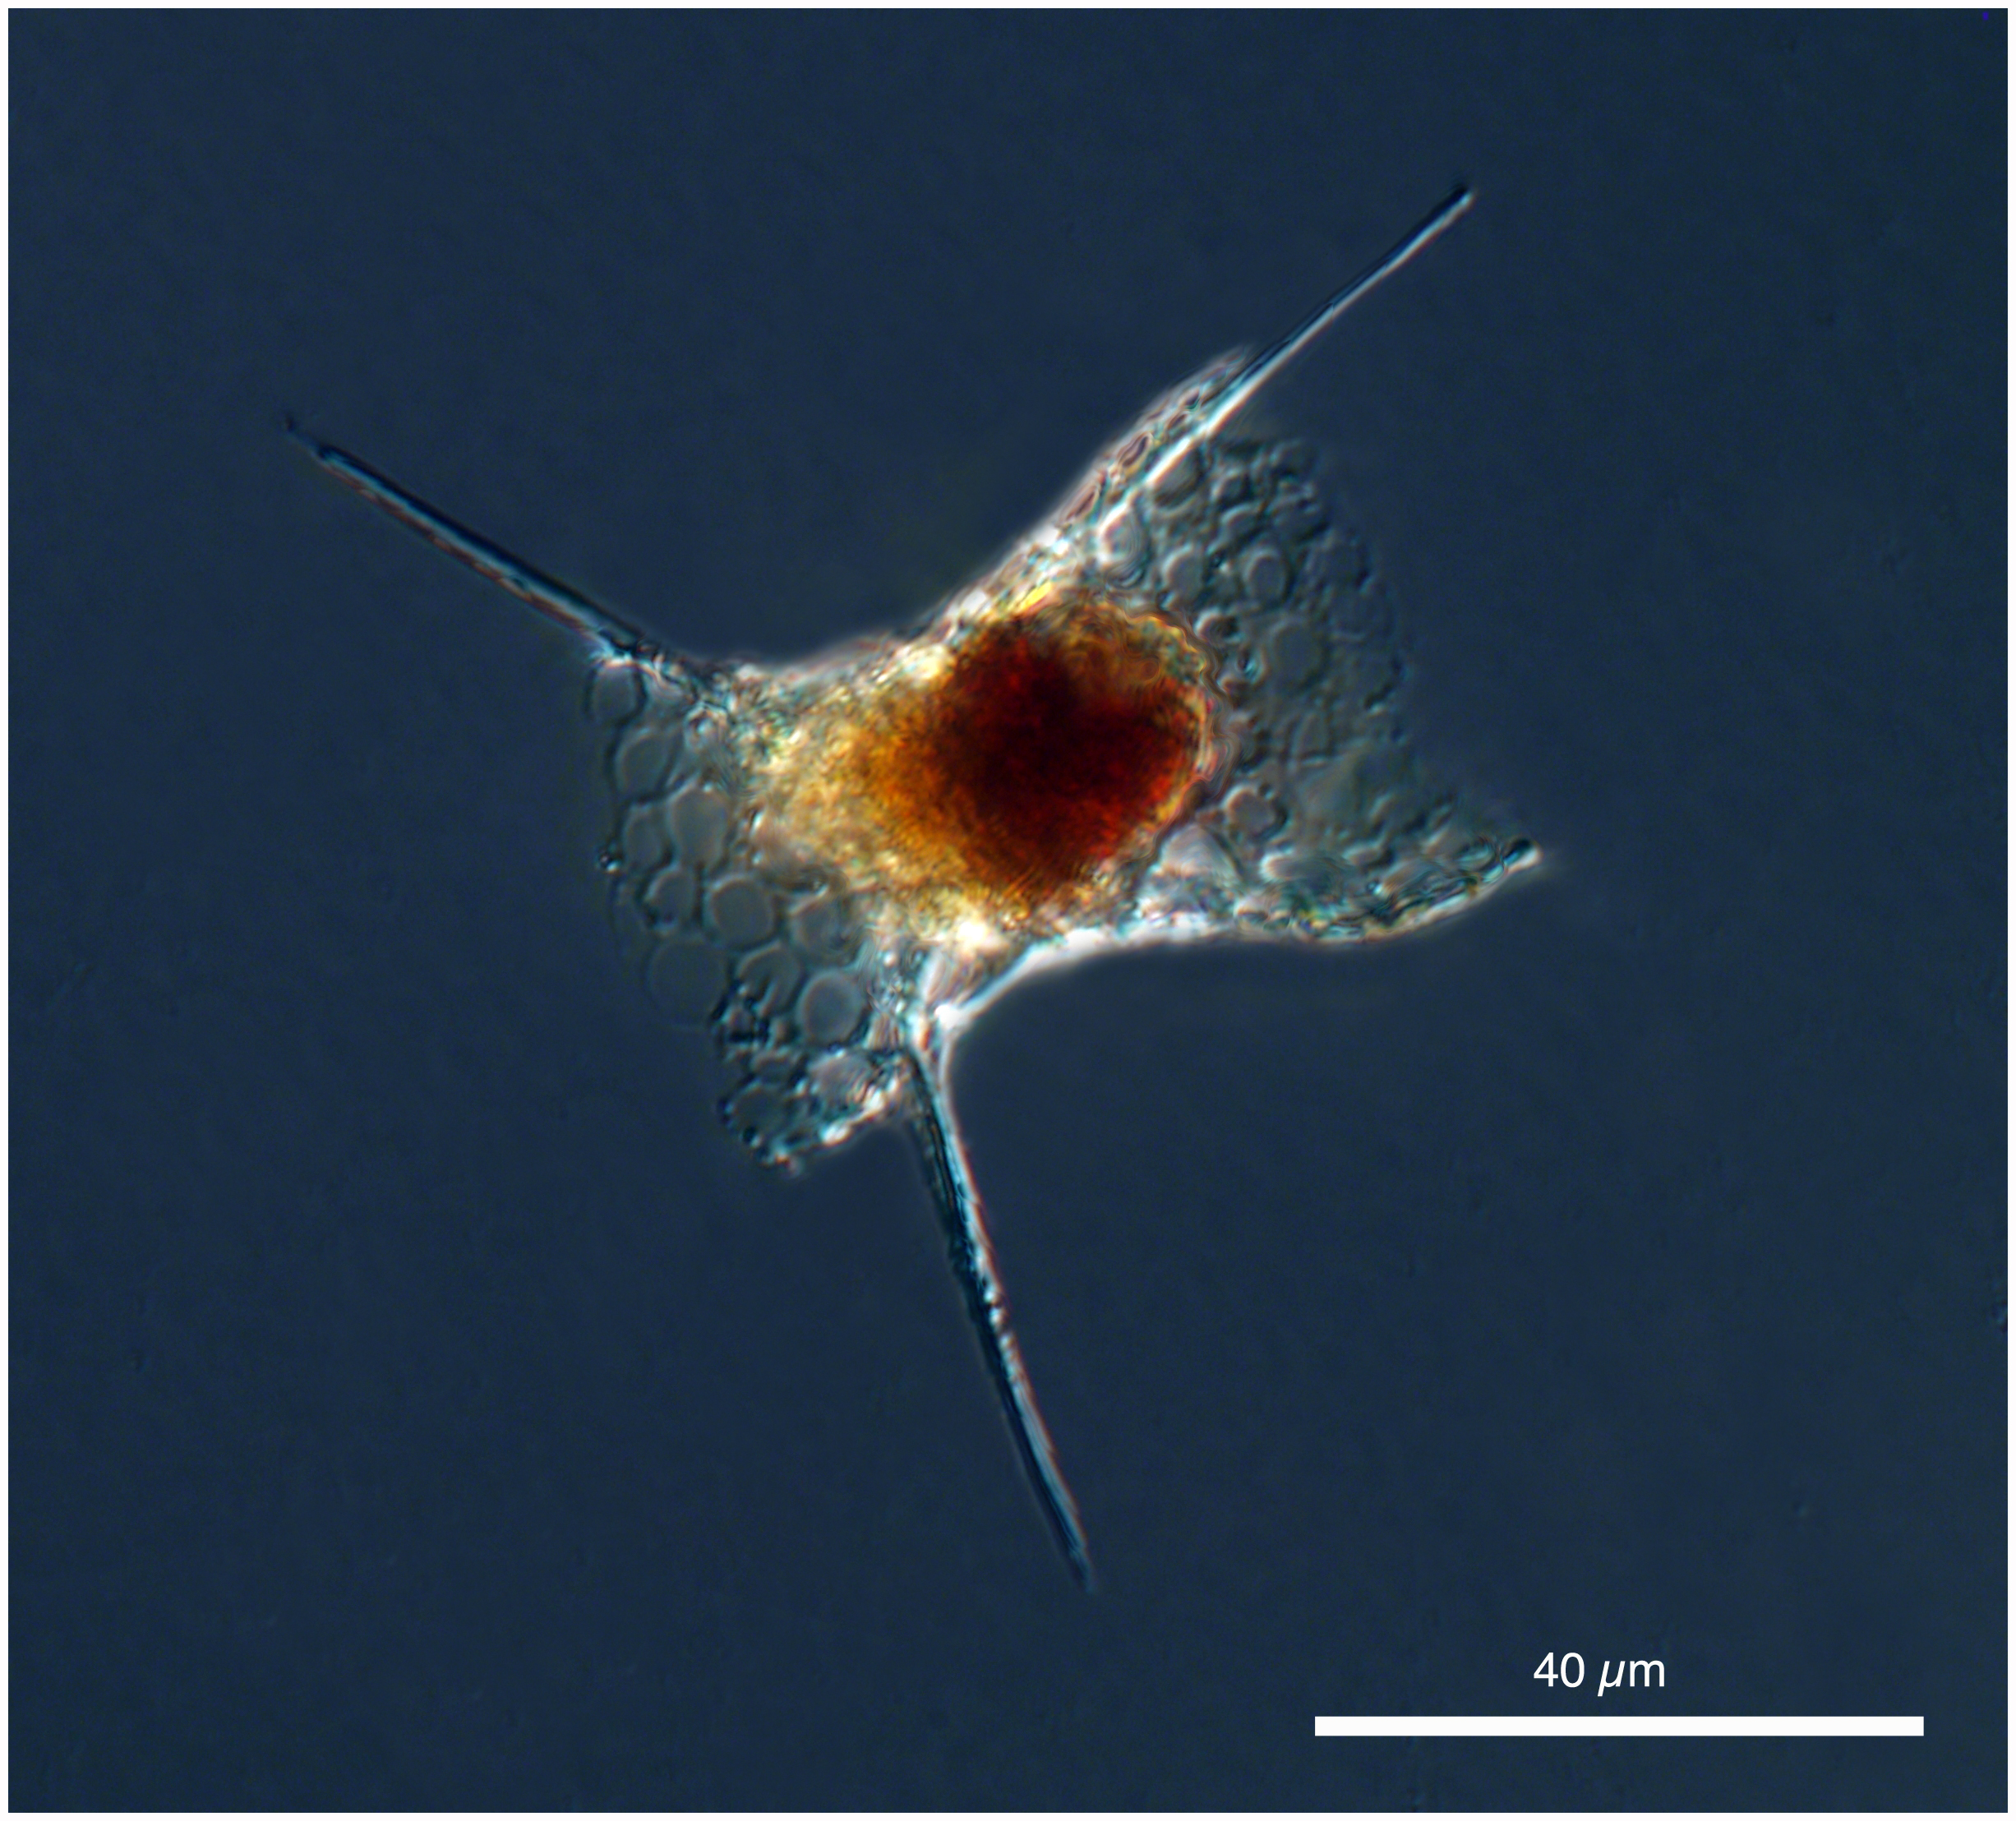 radiolarian Permomelissa or Dimelissa thoracites (Haeckel). [Lophophaenidae] Formerly known as Lithomelissa thoracites